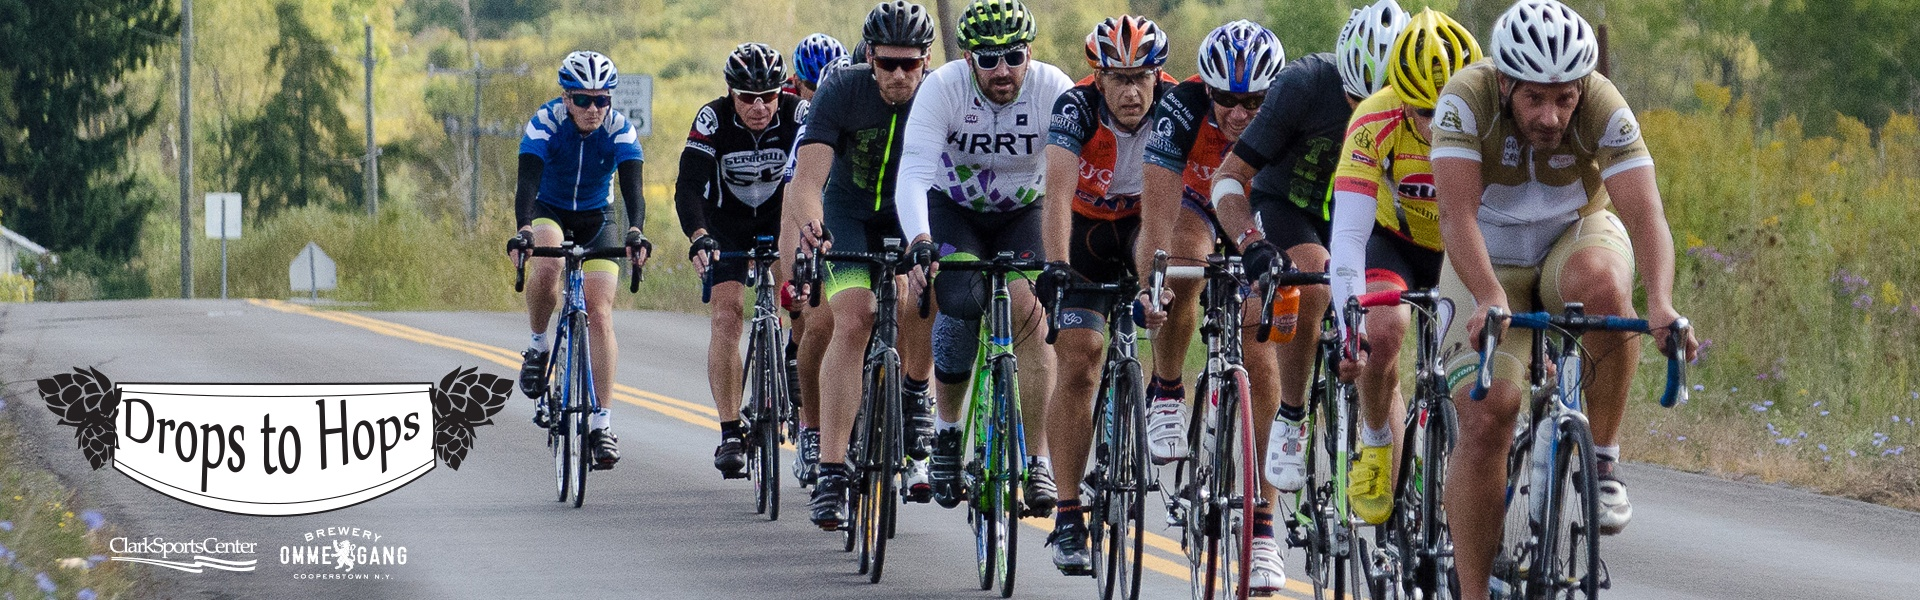 8th Annual Drops to Hops Bike Race